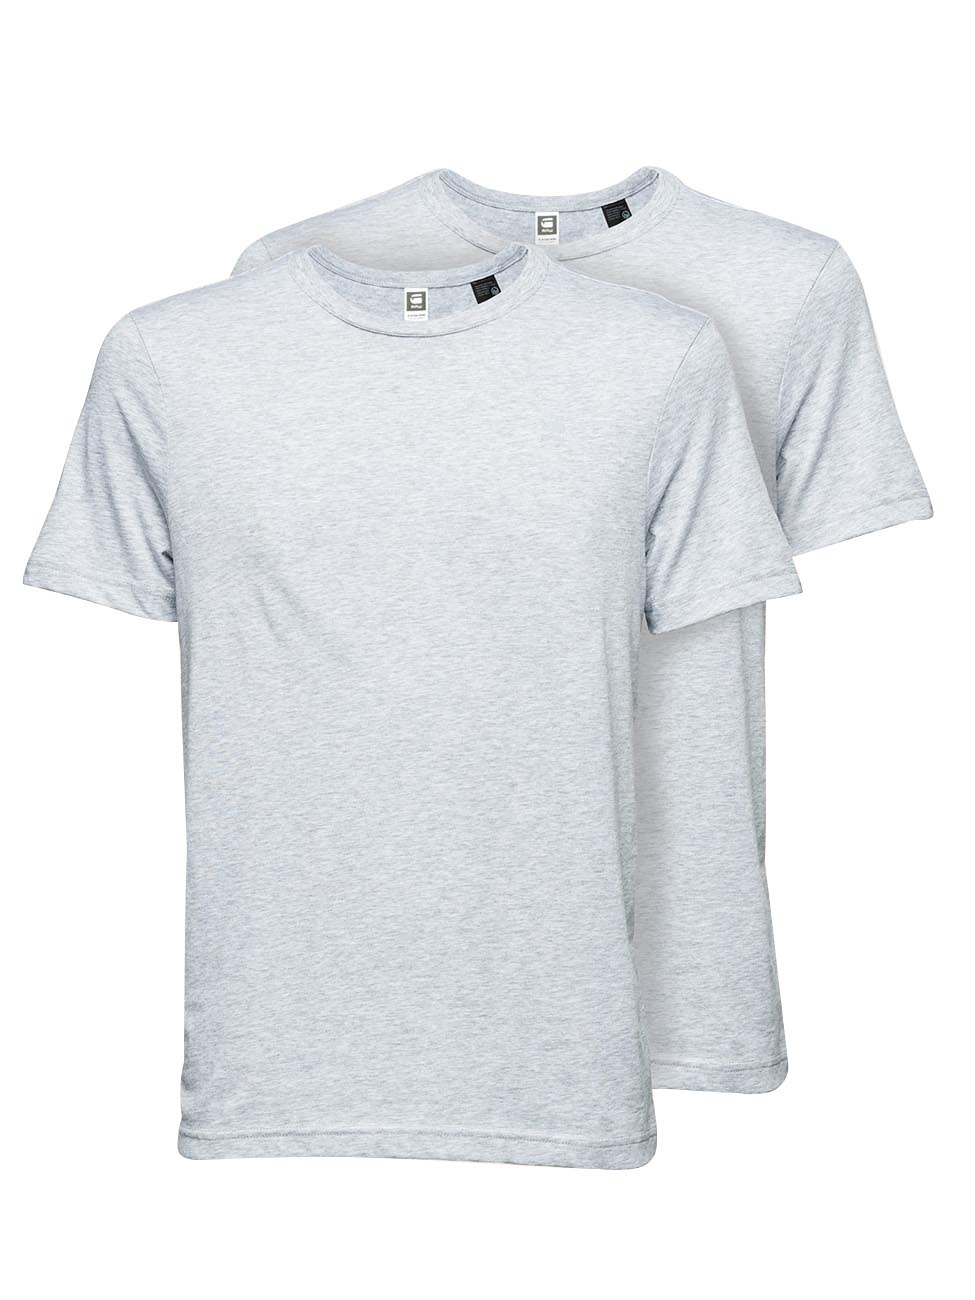 G-Star Herren Basic T-Shirt Rundhals 2er Pack